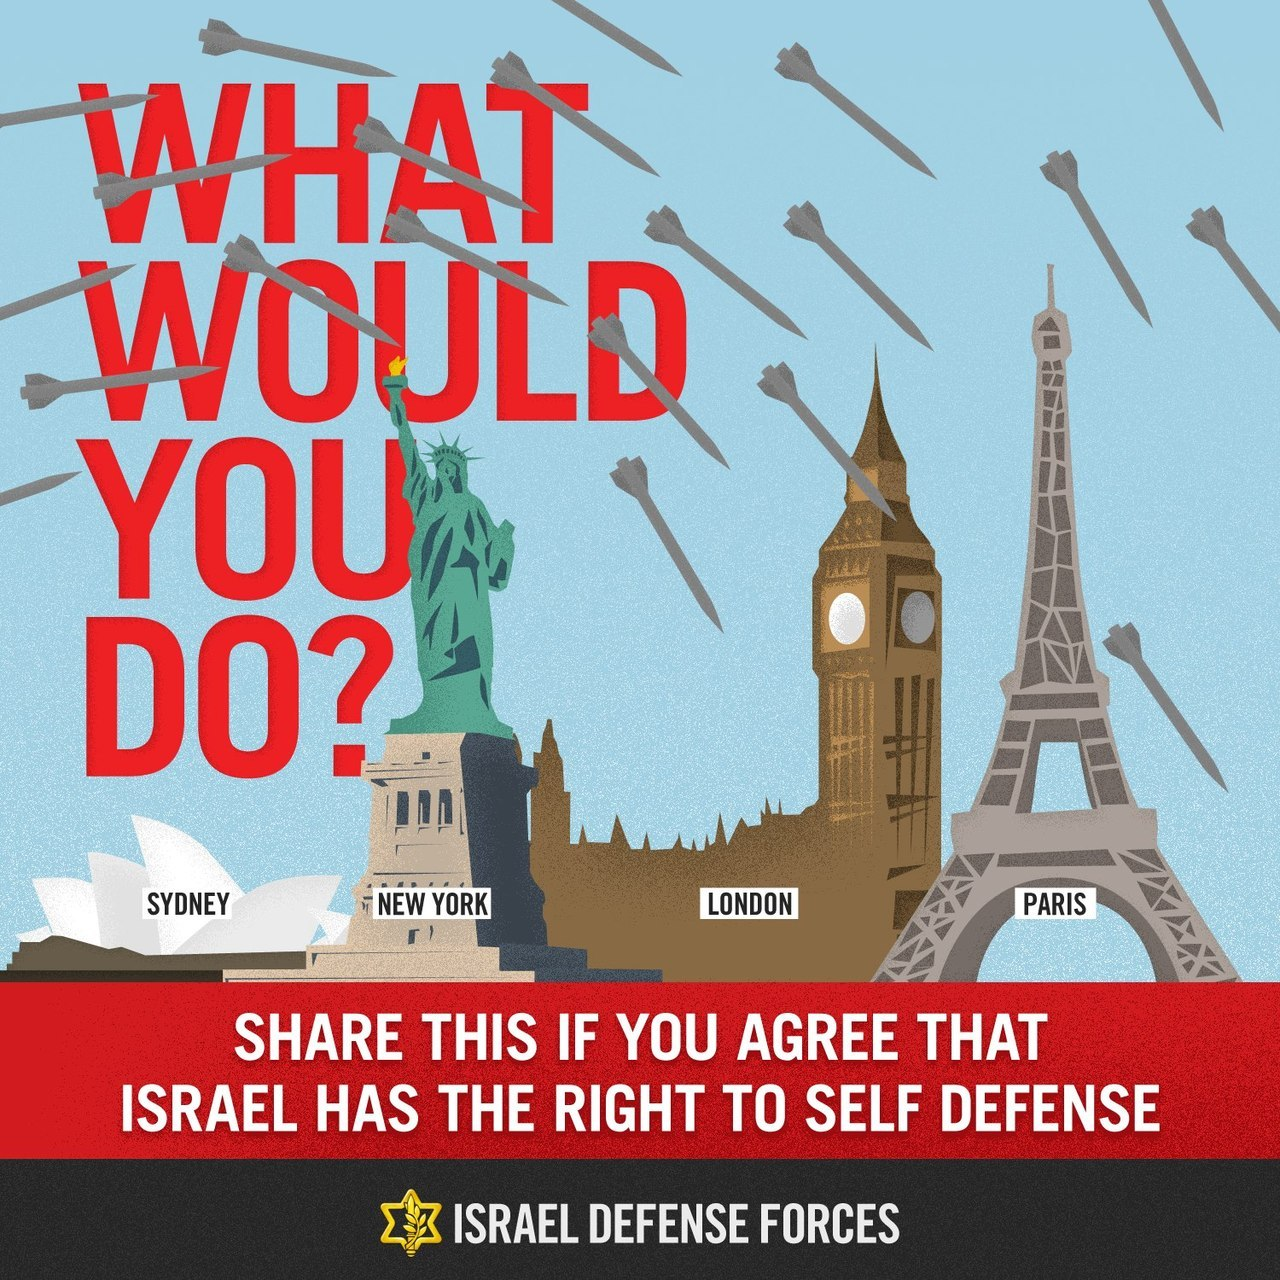 Minutes ago, a rocket alarm sounded in Tel Aviv. What would you do if rockets were striking your cities?